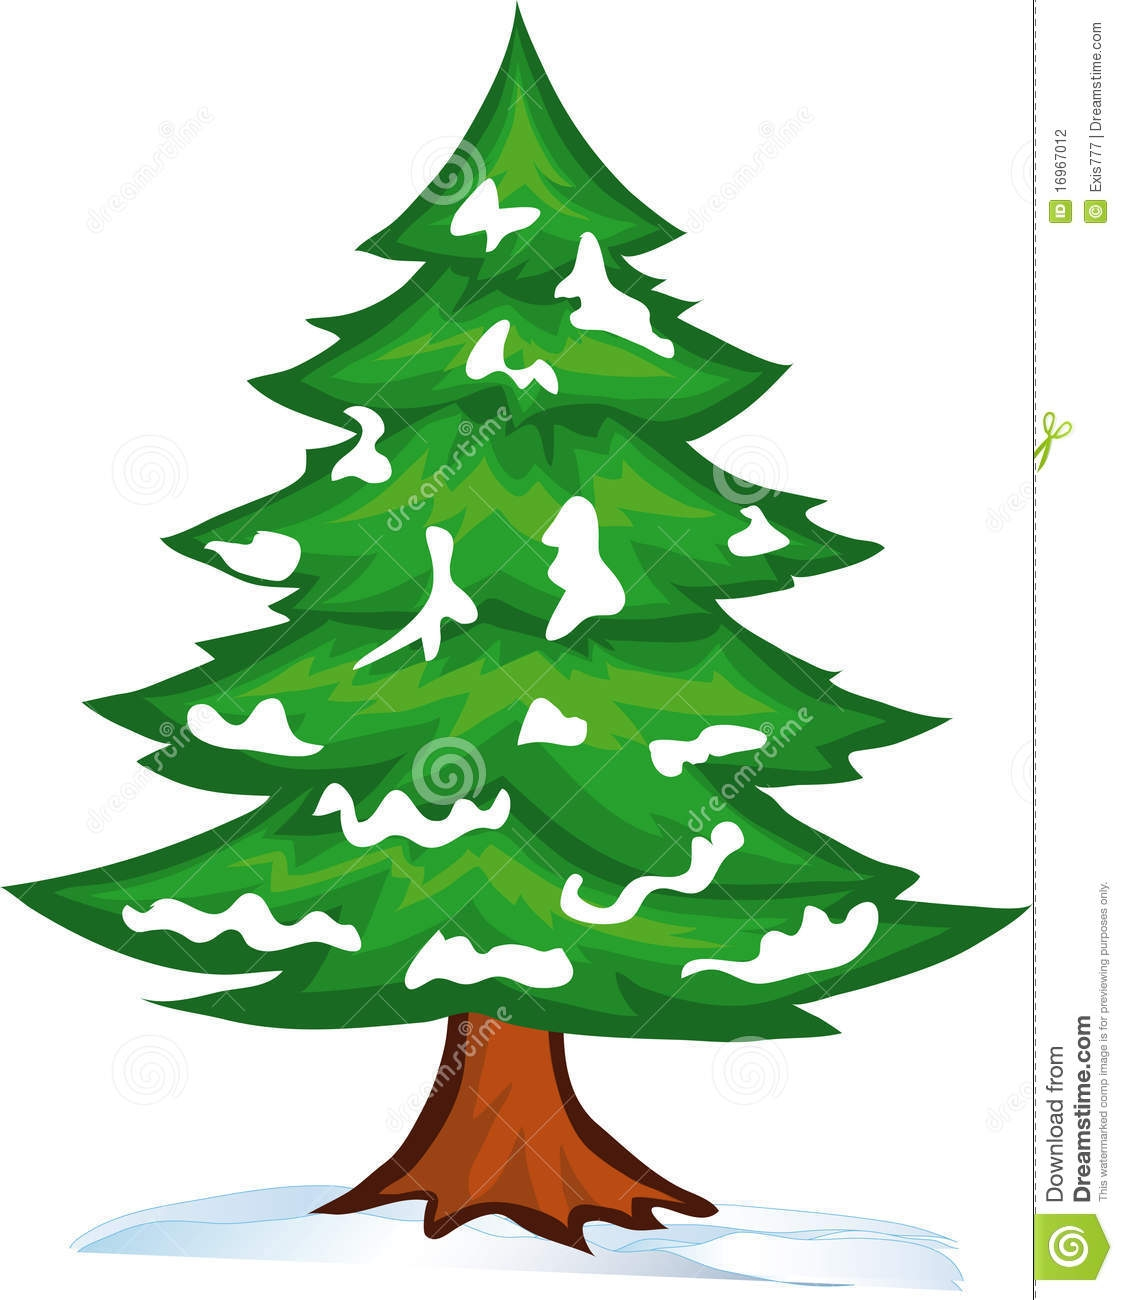 Pine Tree Outline Clip Art.